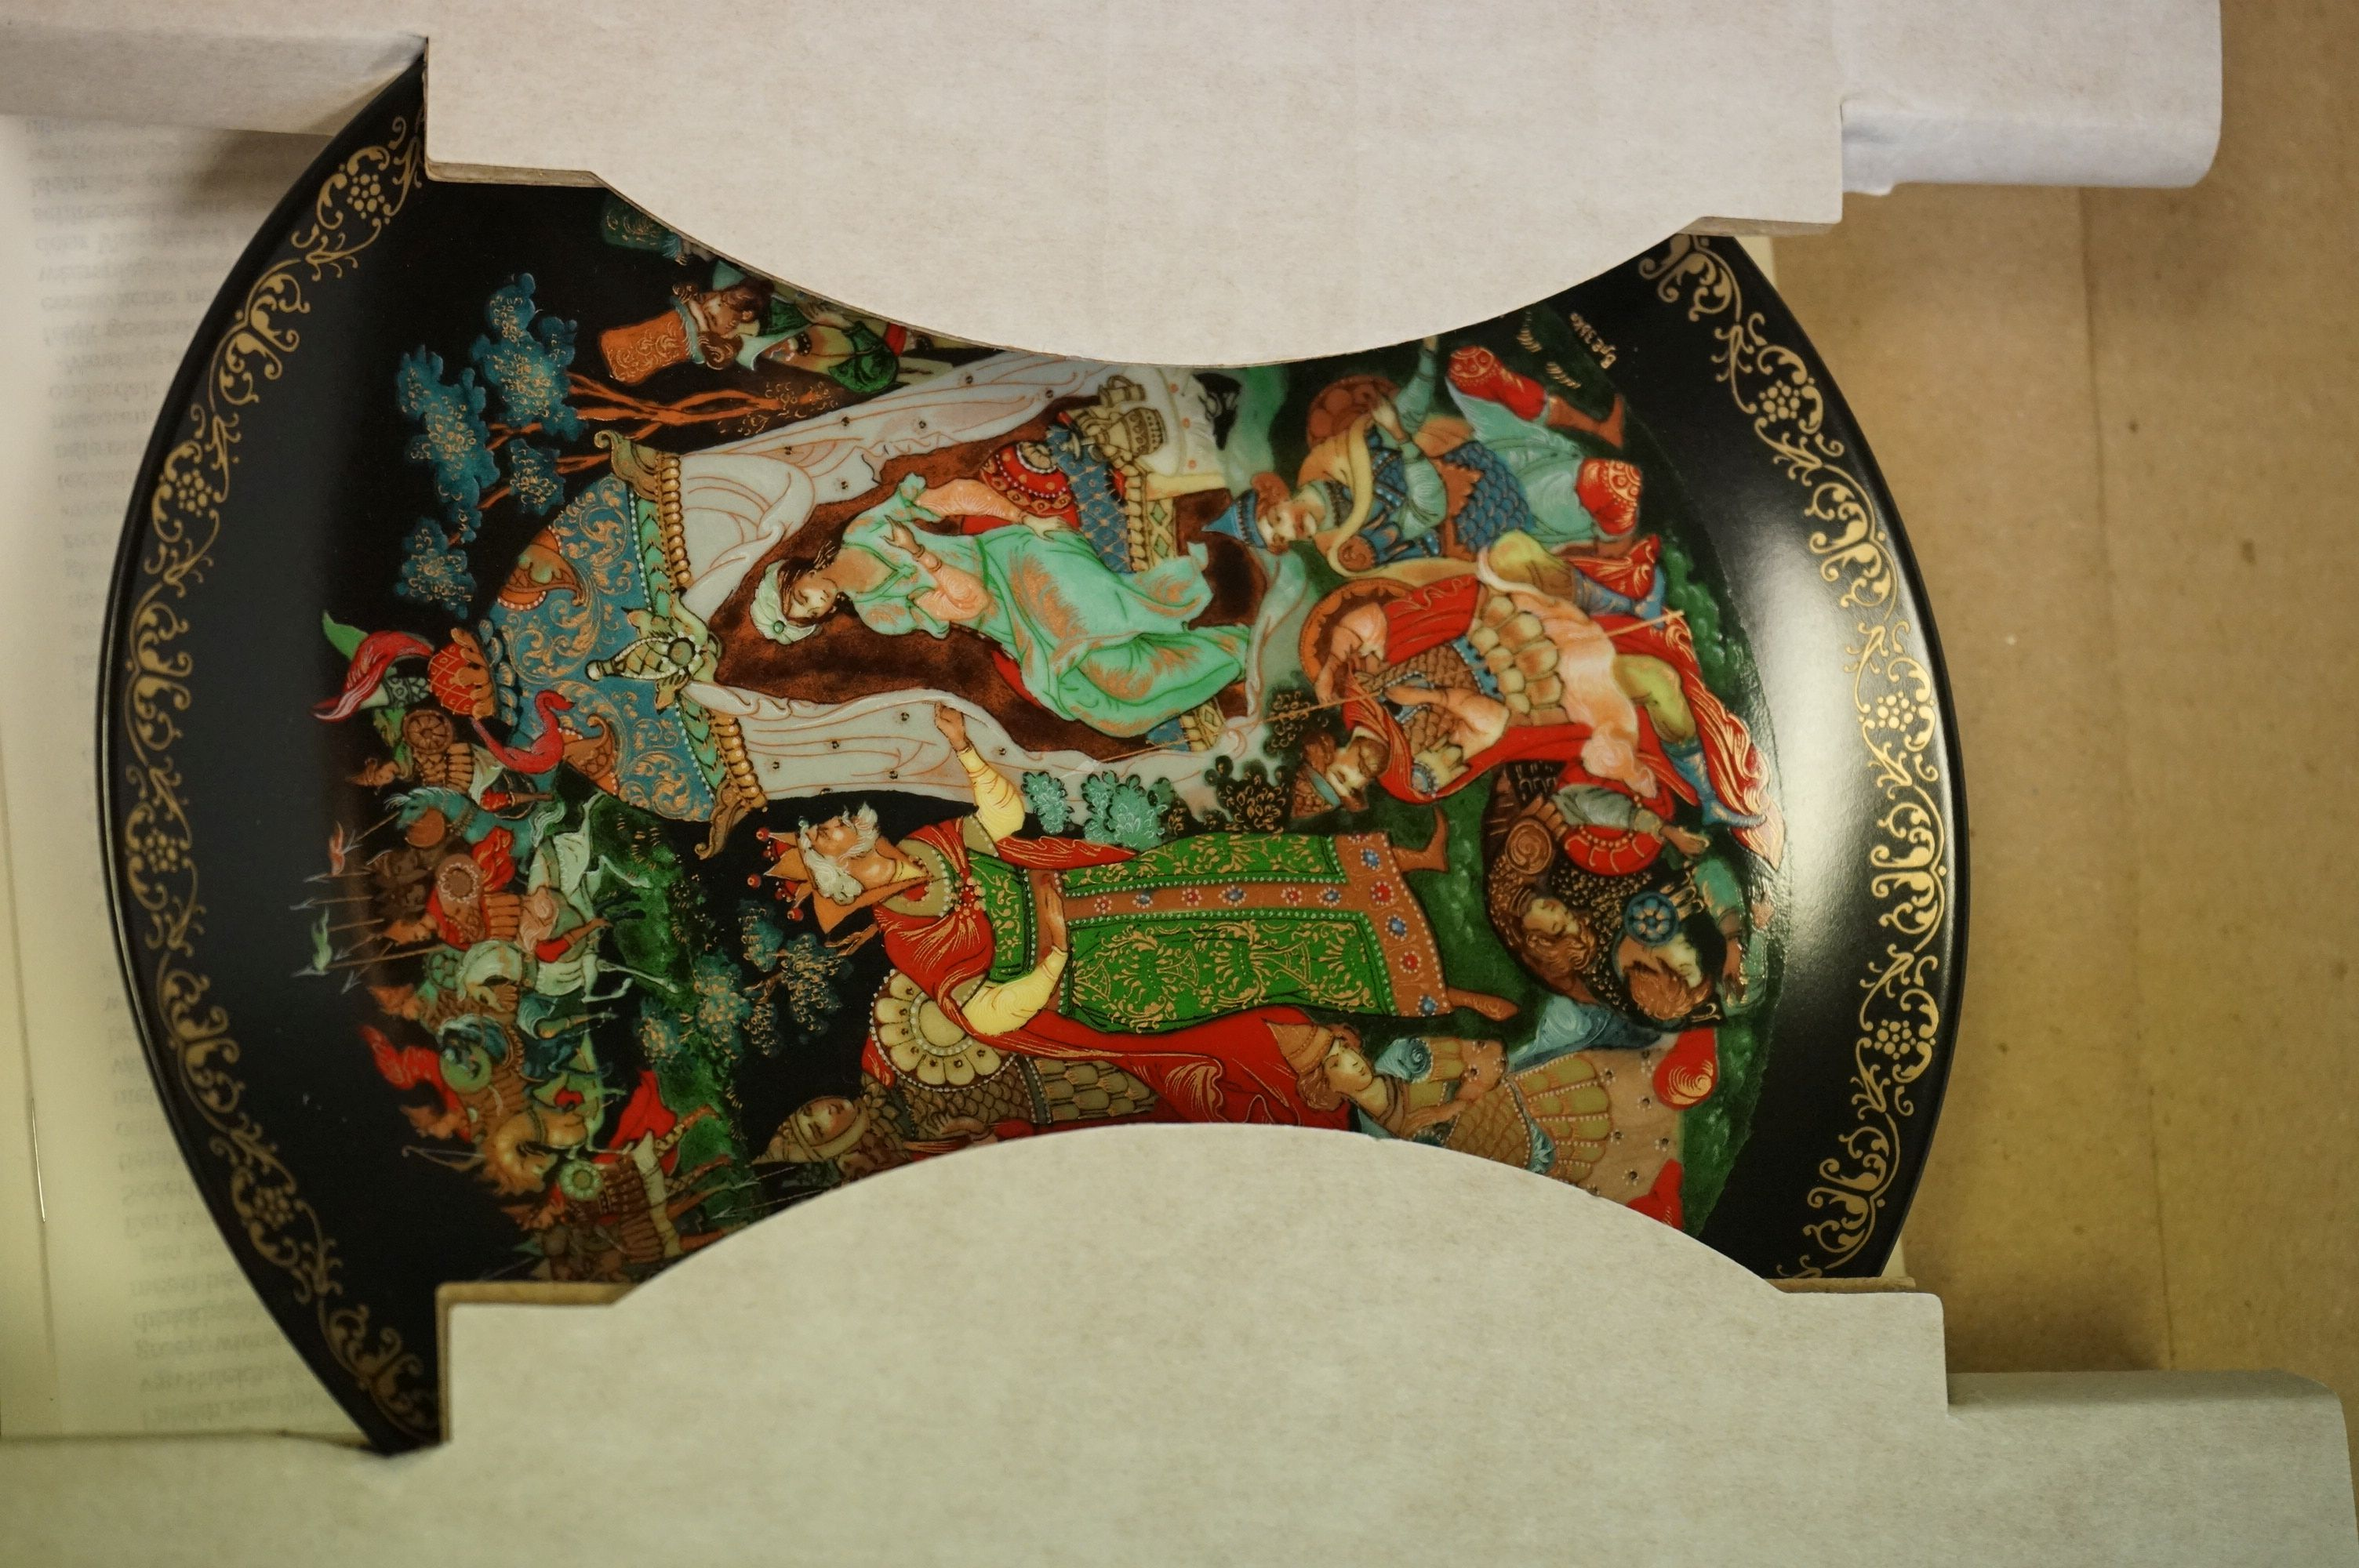 A collection of The Bradford Exchange collectors plates. - Image 5 of 5